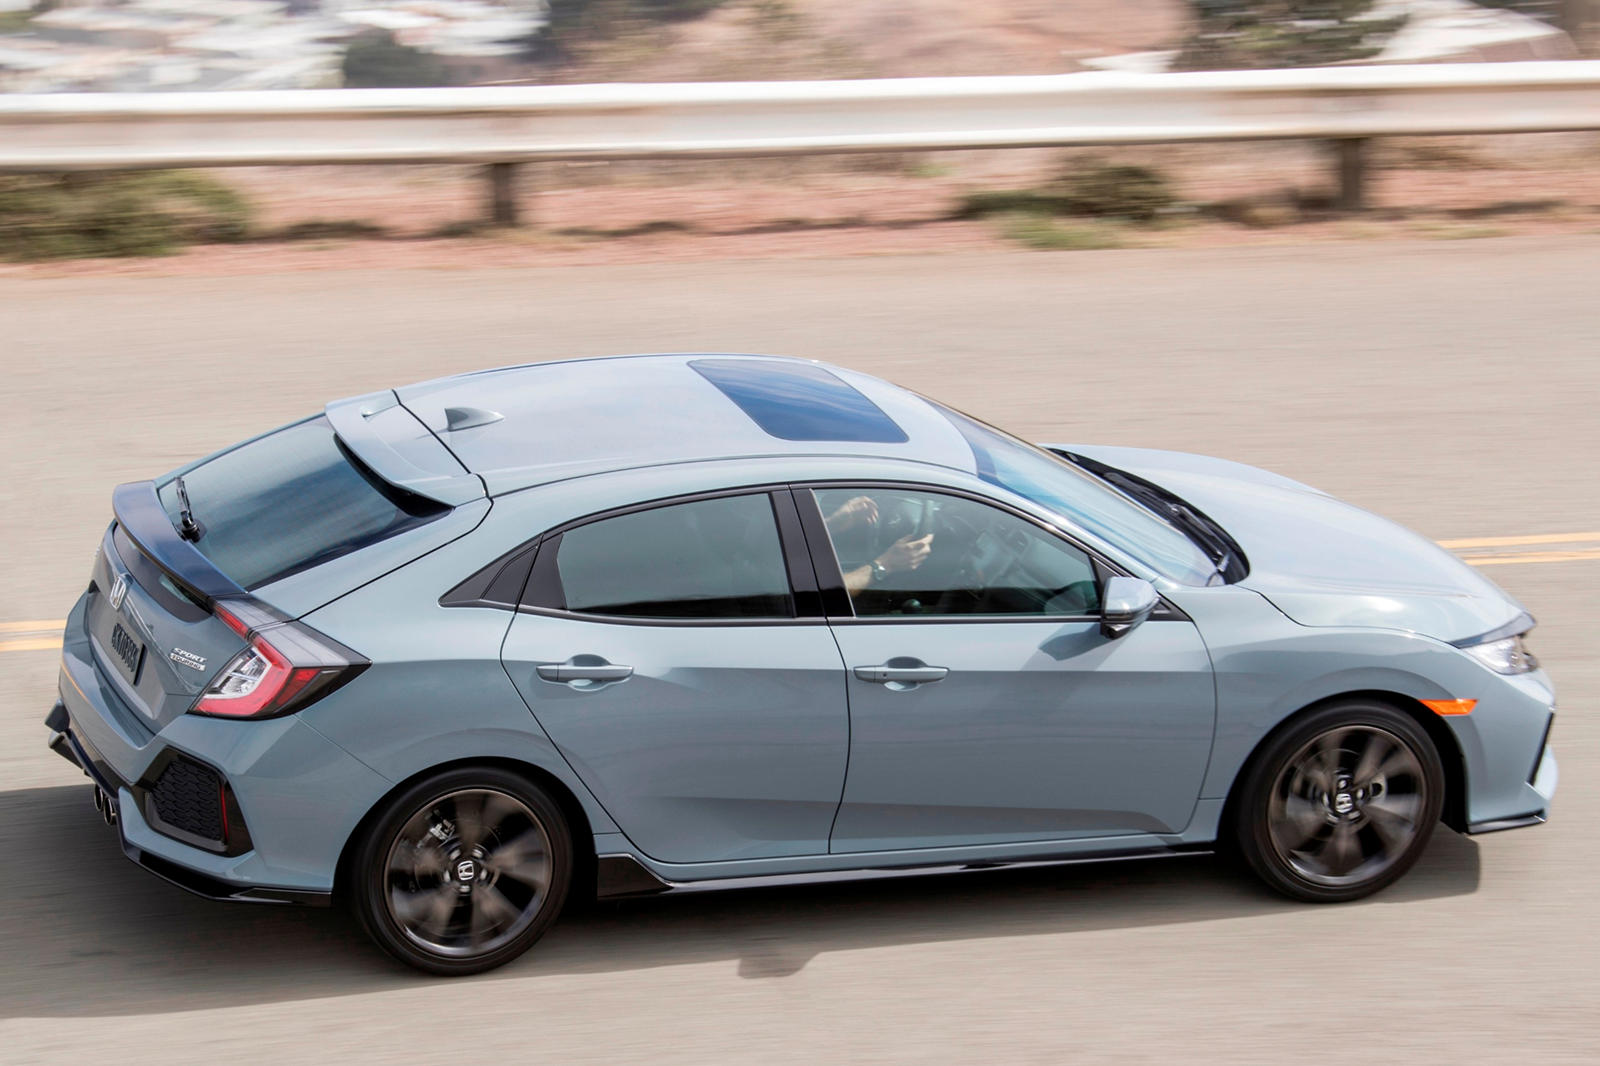 2020 Honda Civic Hatchback Exterior